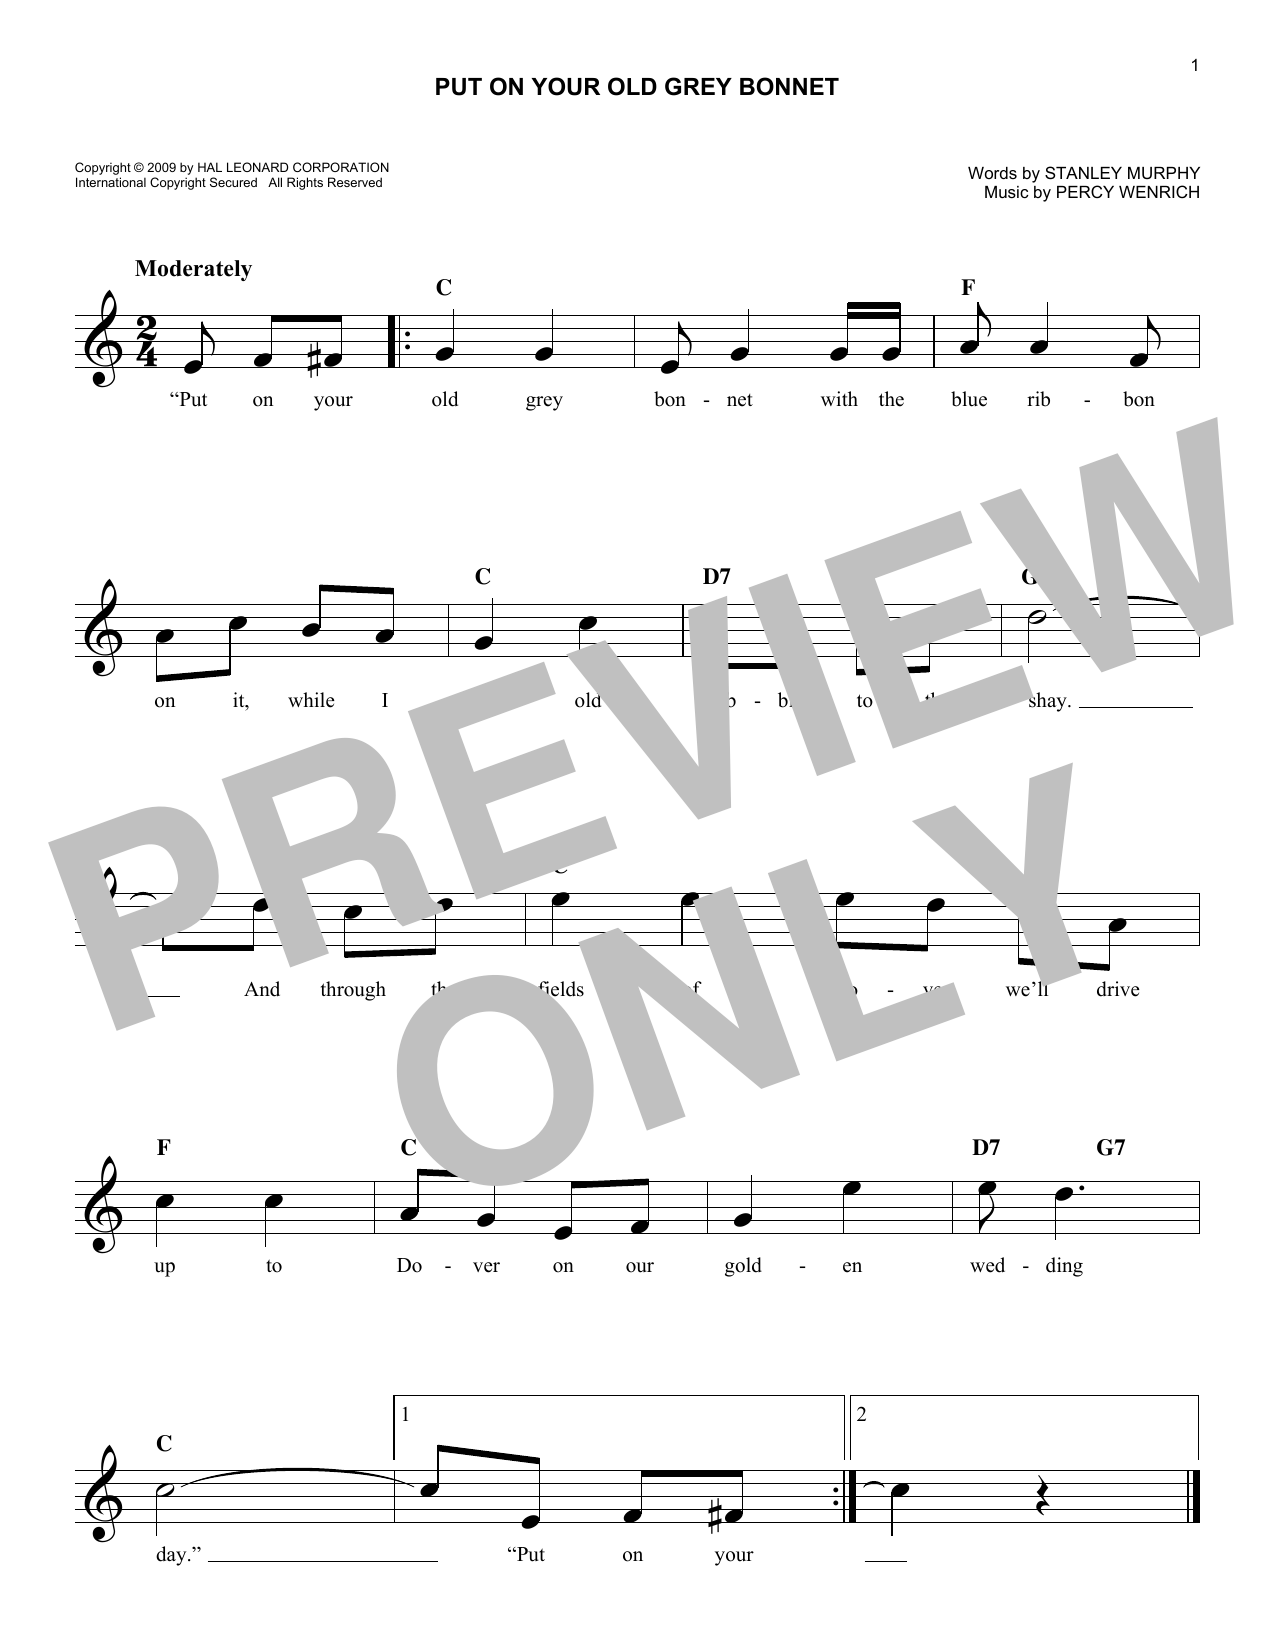 Percy Wenrich Put On Your Old Grey Bonnet sheet music notes and chords. Download Printable PDF.